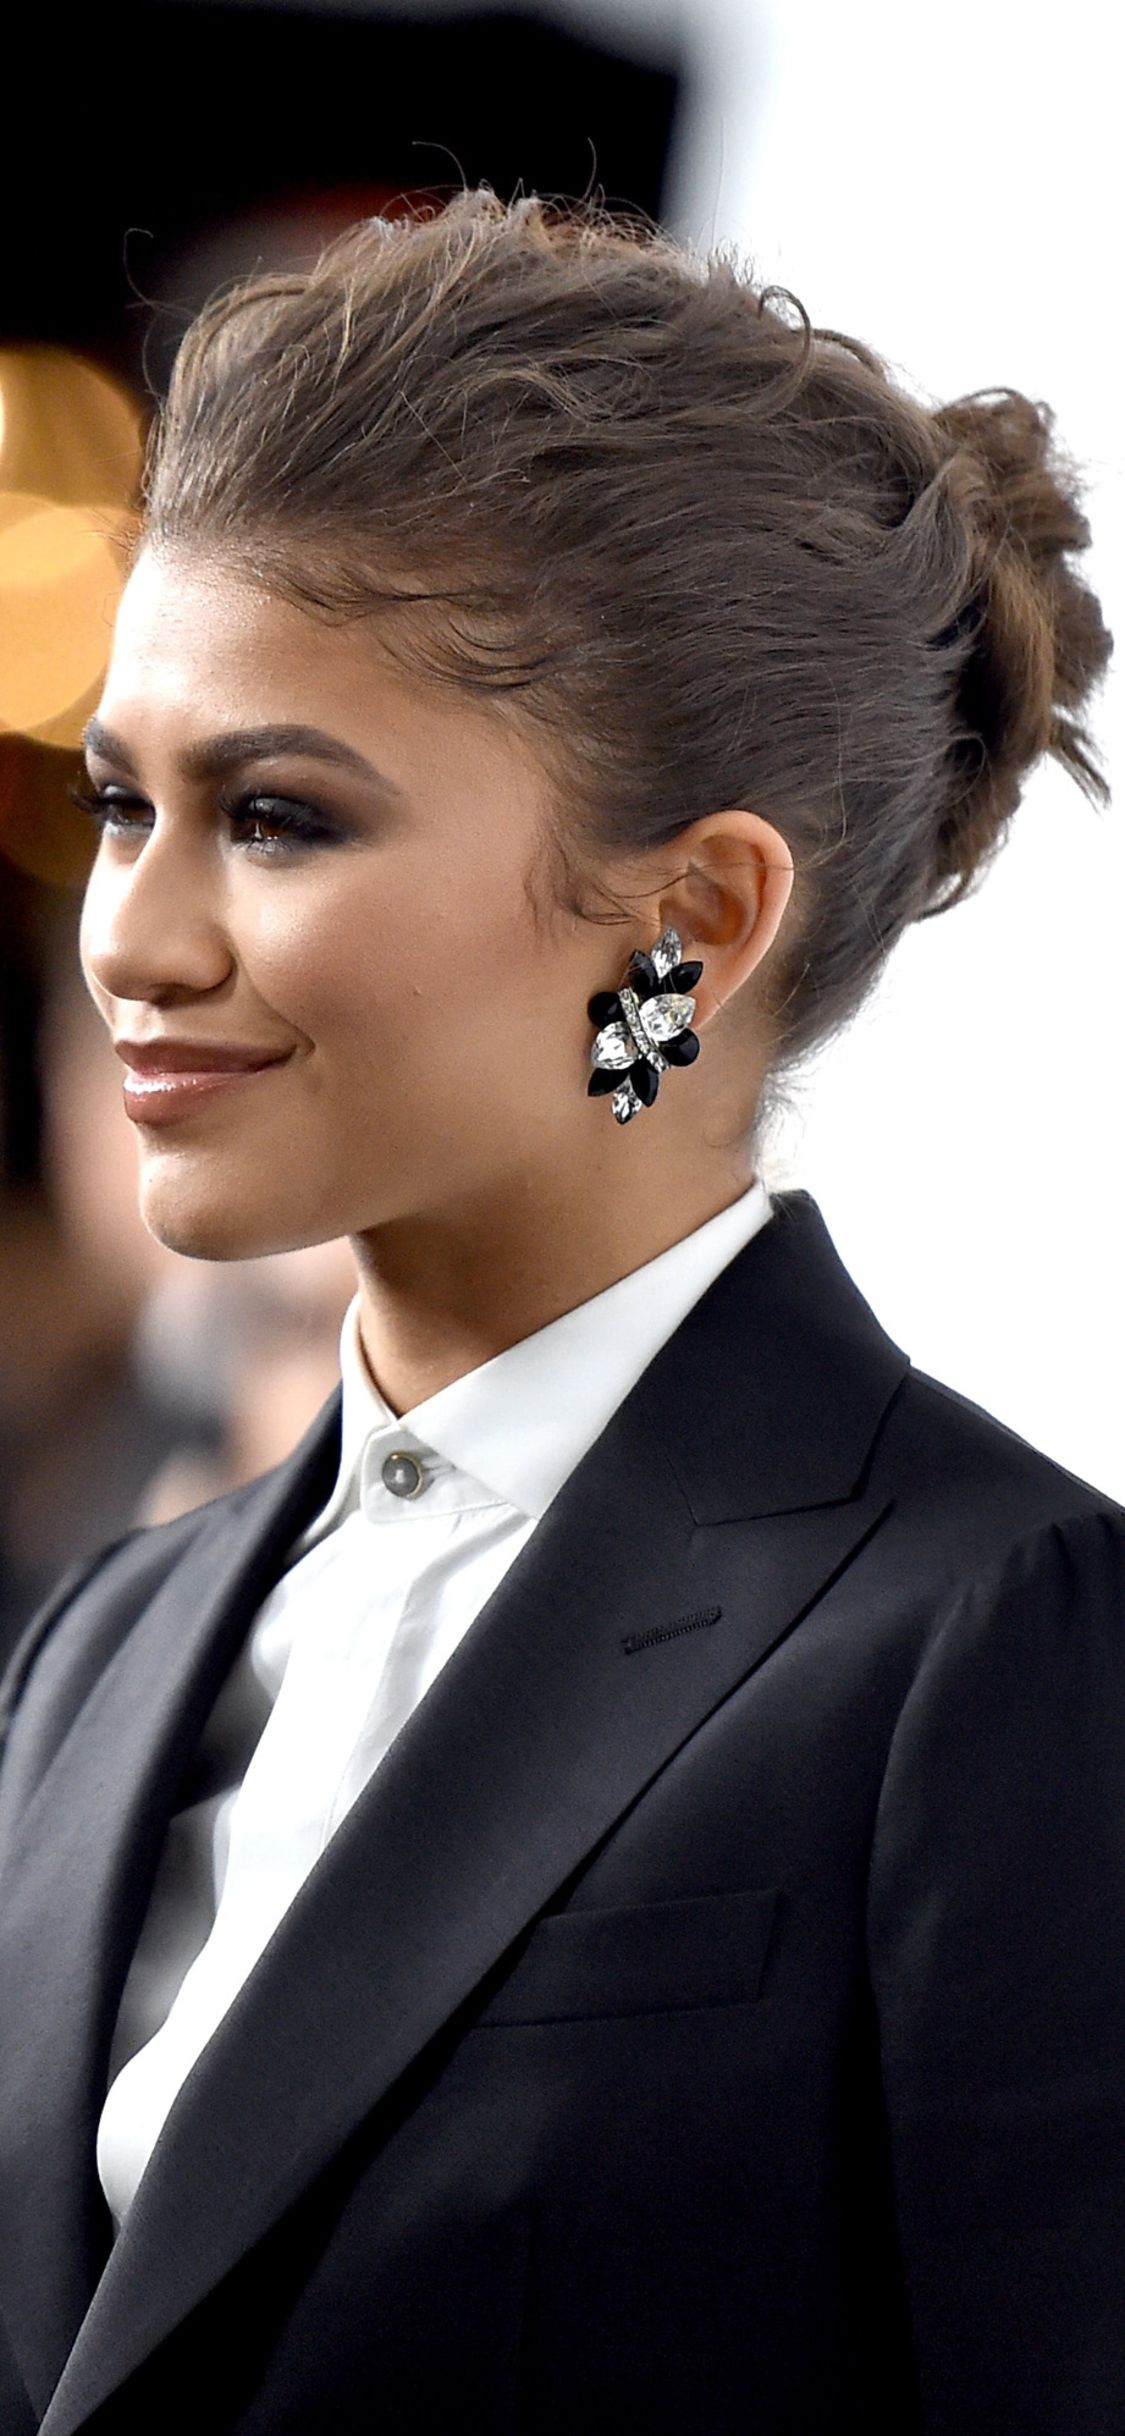 1125x2436 Zendaya 2018 Iphone Xs Iphone 10 Iphone X Hd 4k Wallpapers Images Backgrounds Photos And Pictures Zendaya Zendaya Style Zendaya Coleman